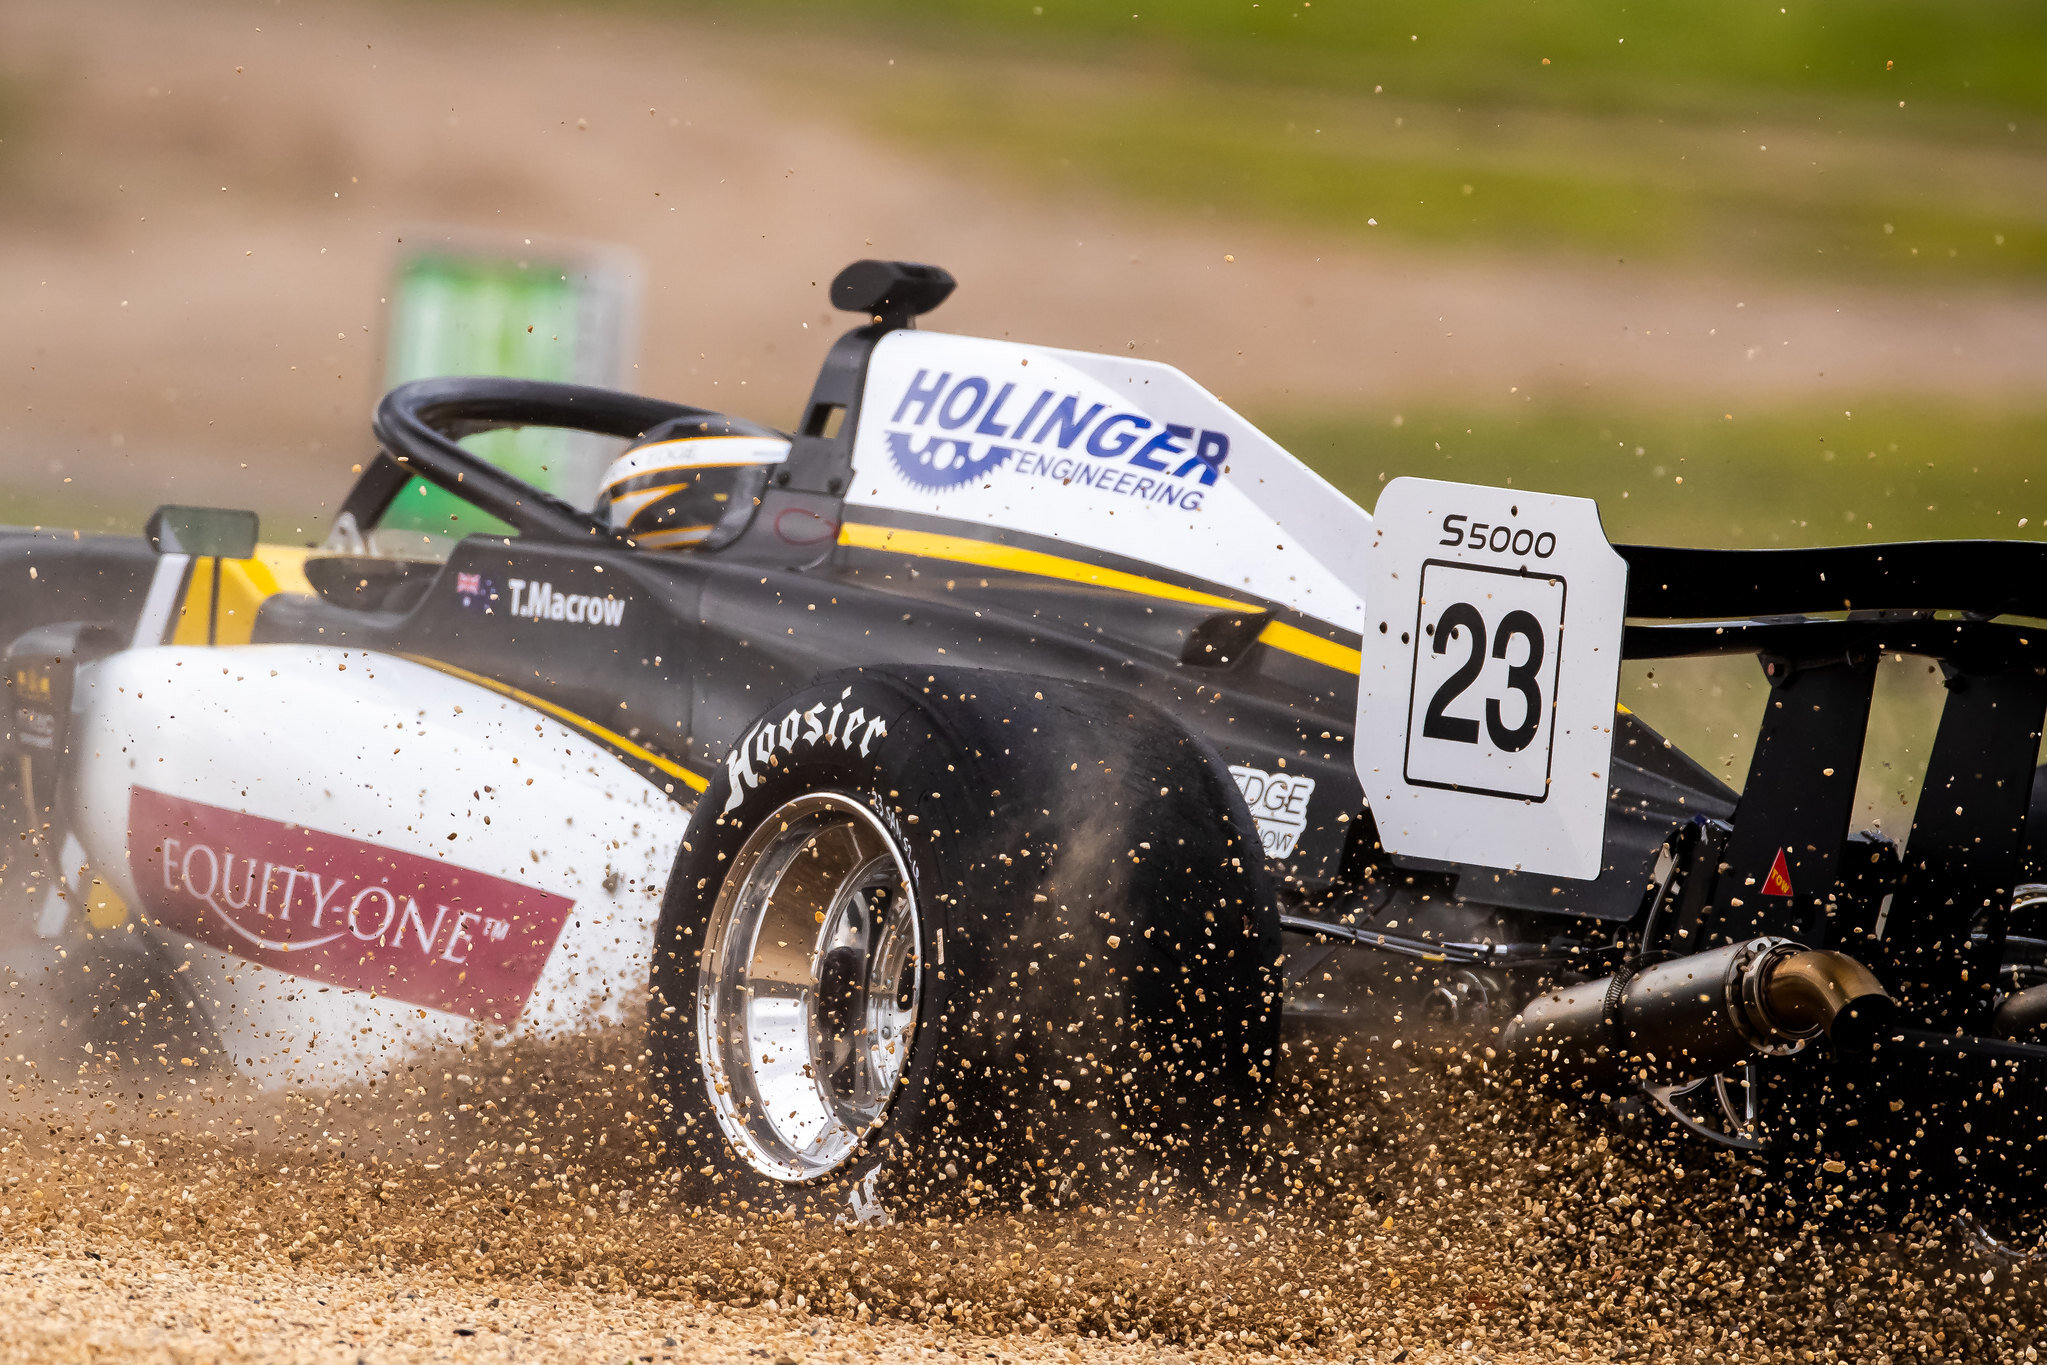 Tim Macrow spins into the gravel. Image: S5000